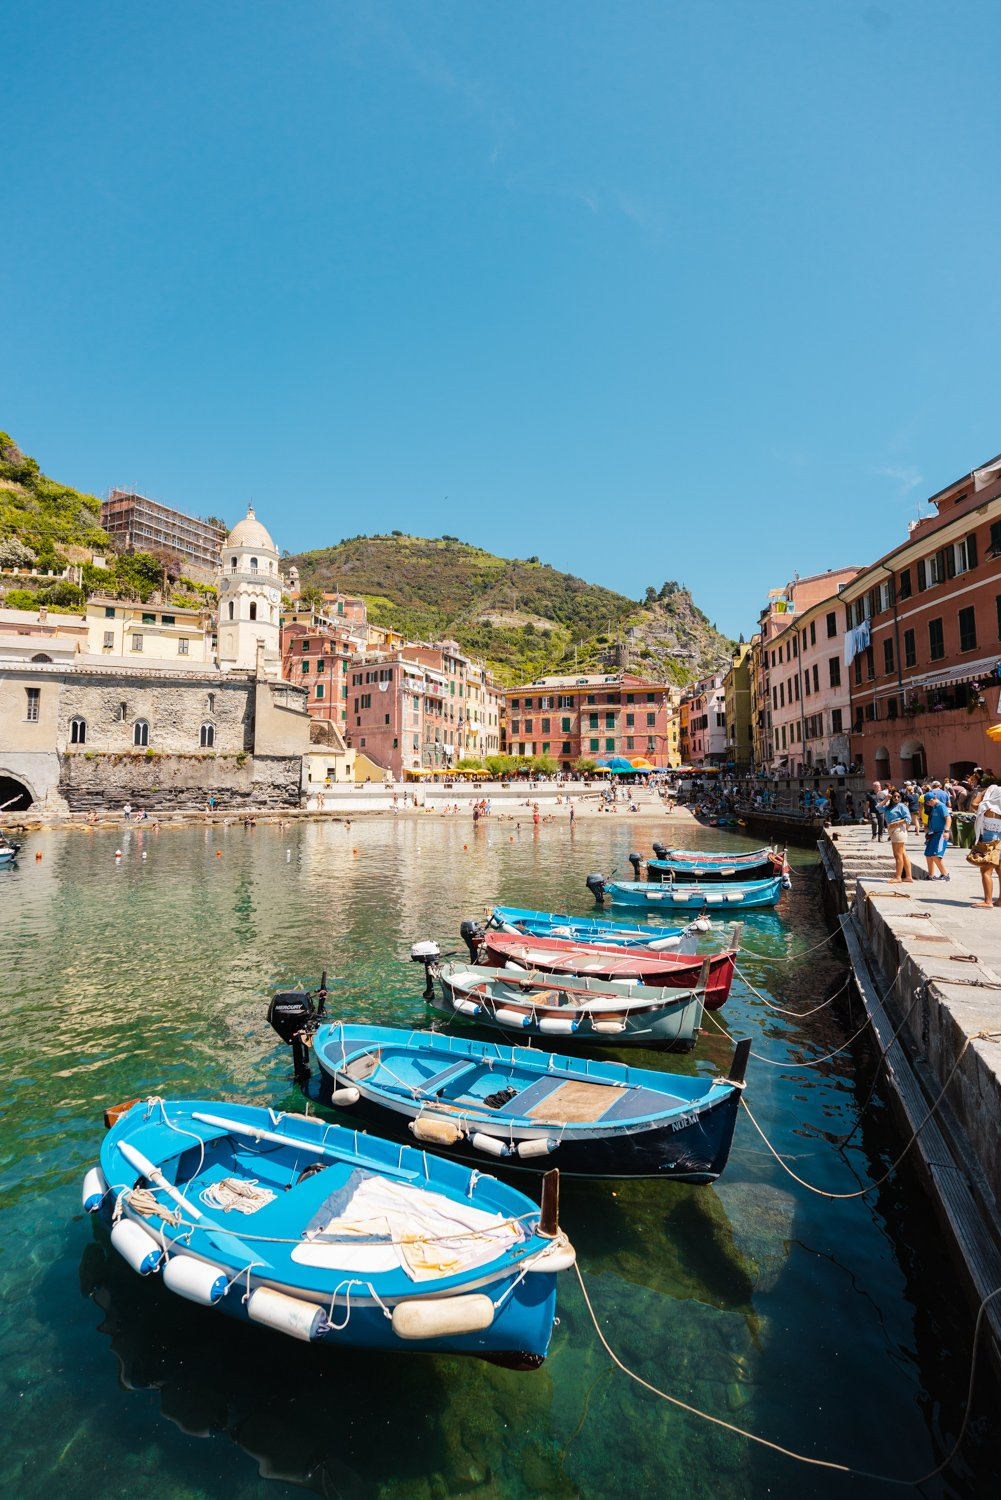 Boats lined up at Promenade in Vernazza Italy